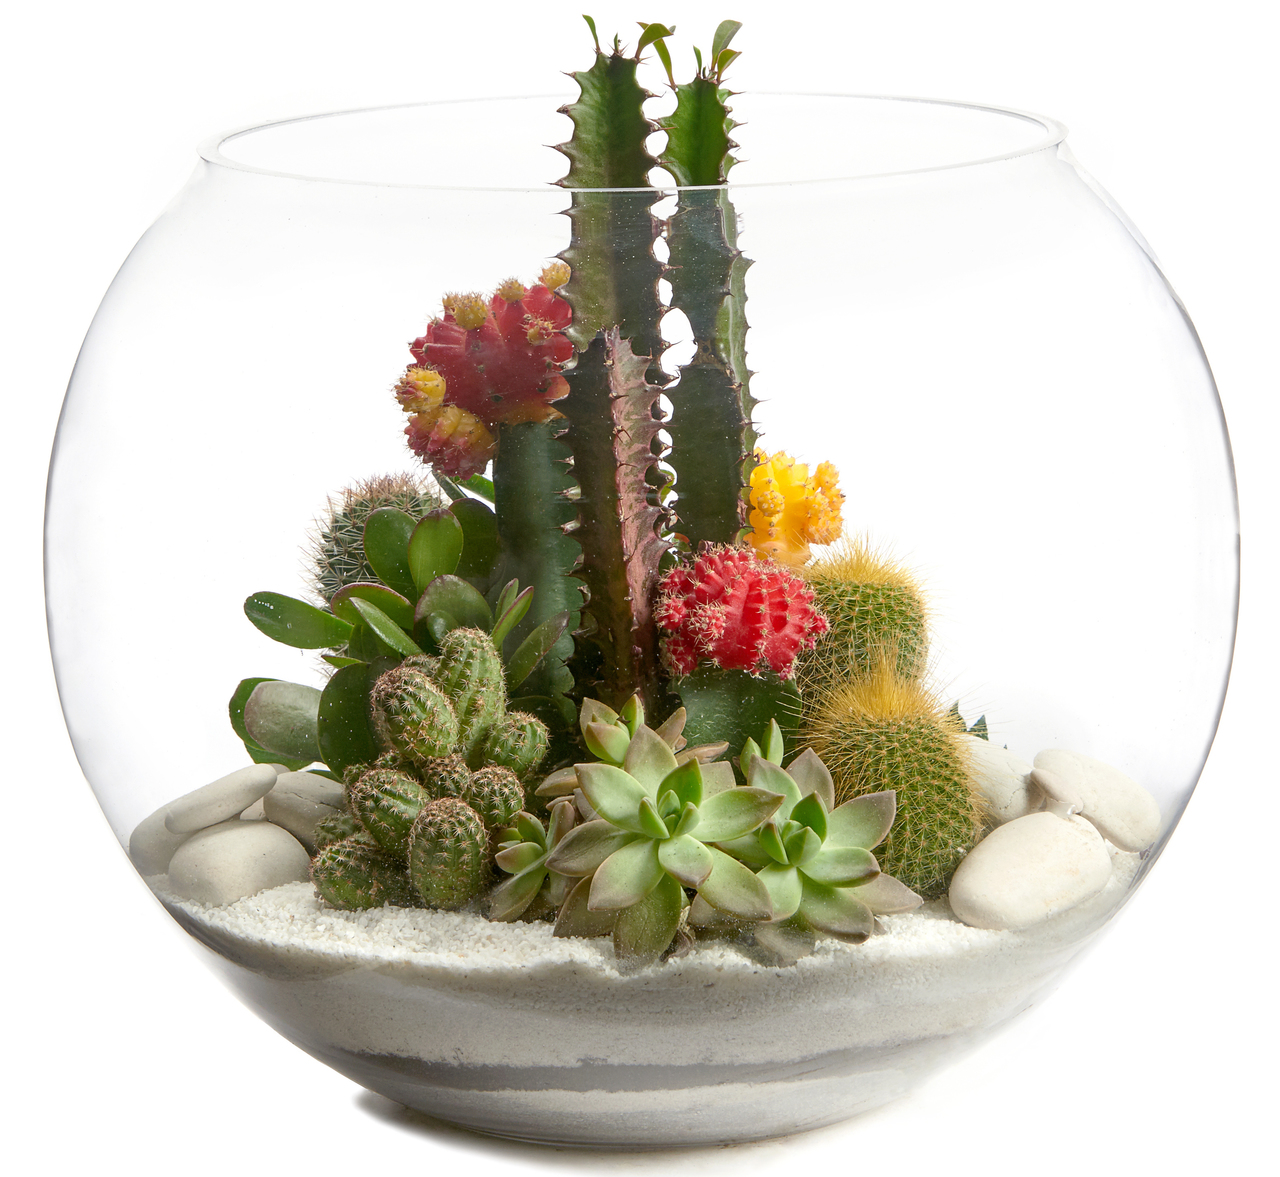 Fishbowl Large White Terrarium Plant The Future